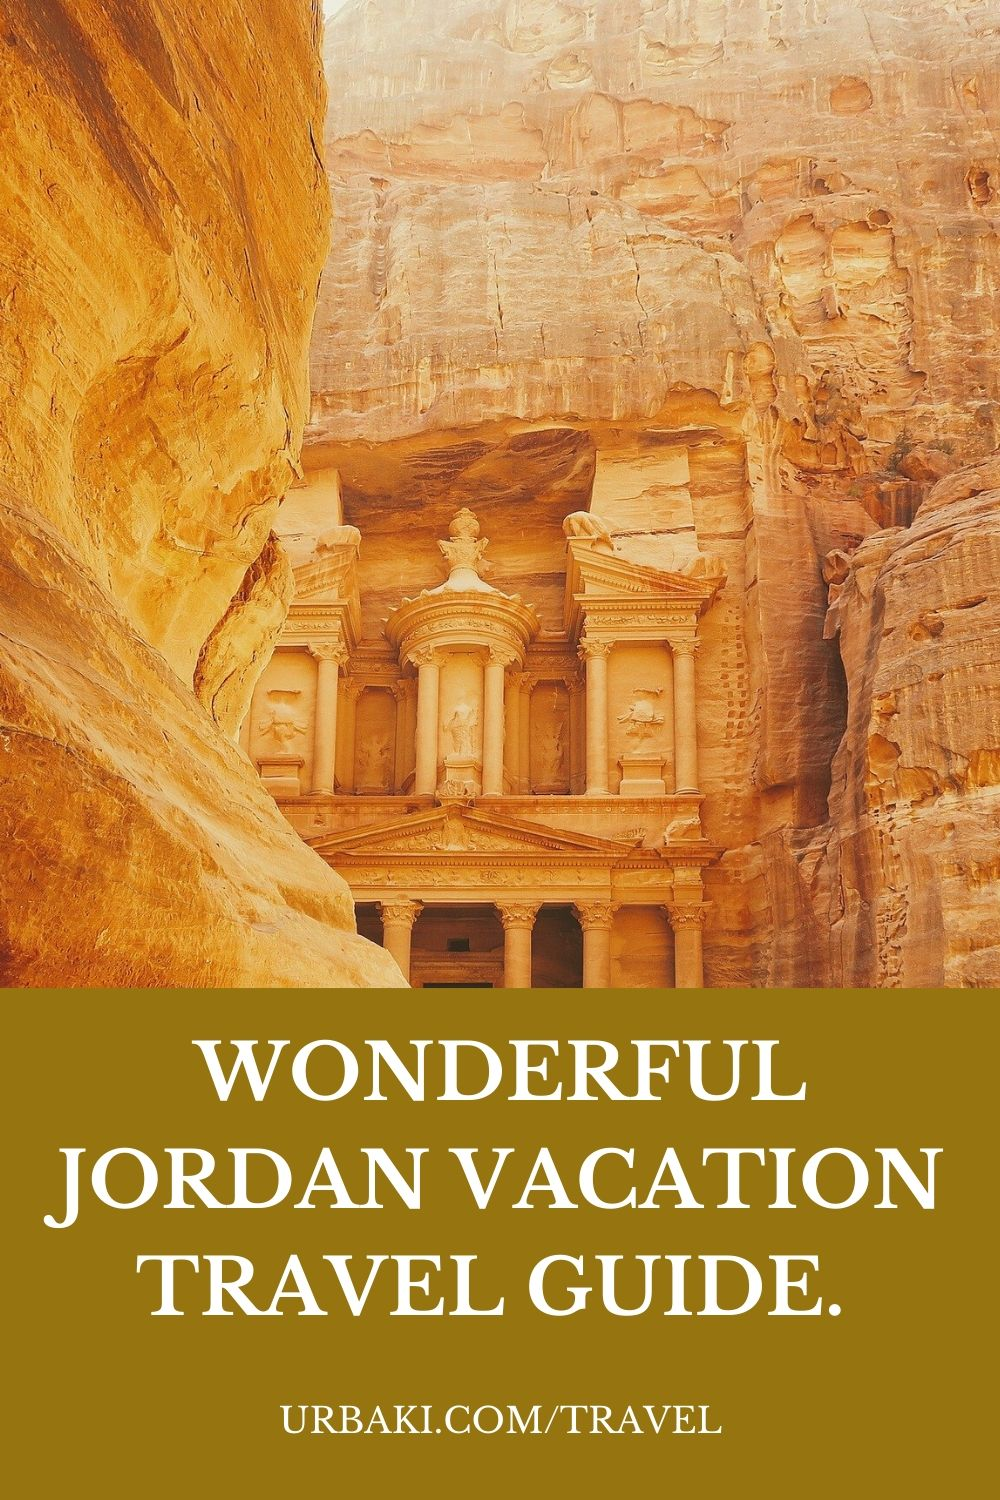 Wonderful Jordan Vacation Travel Guide